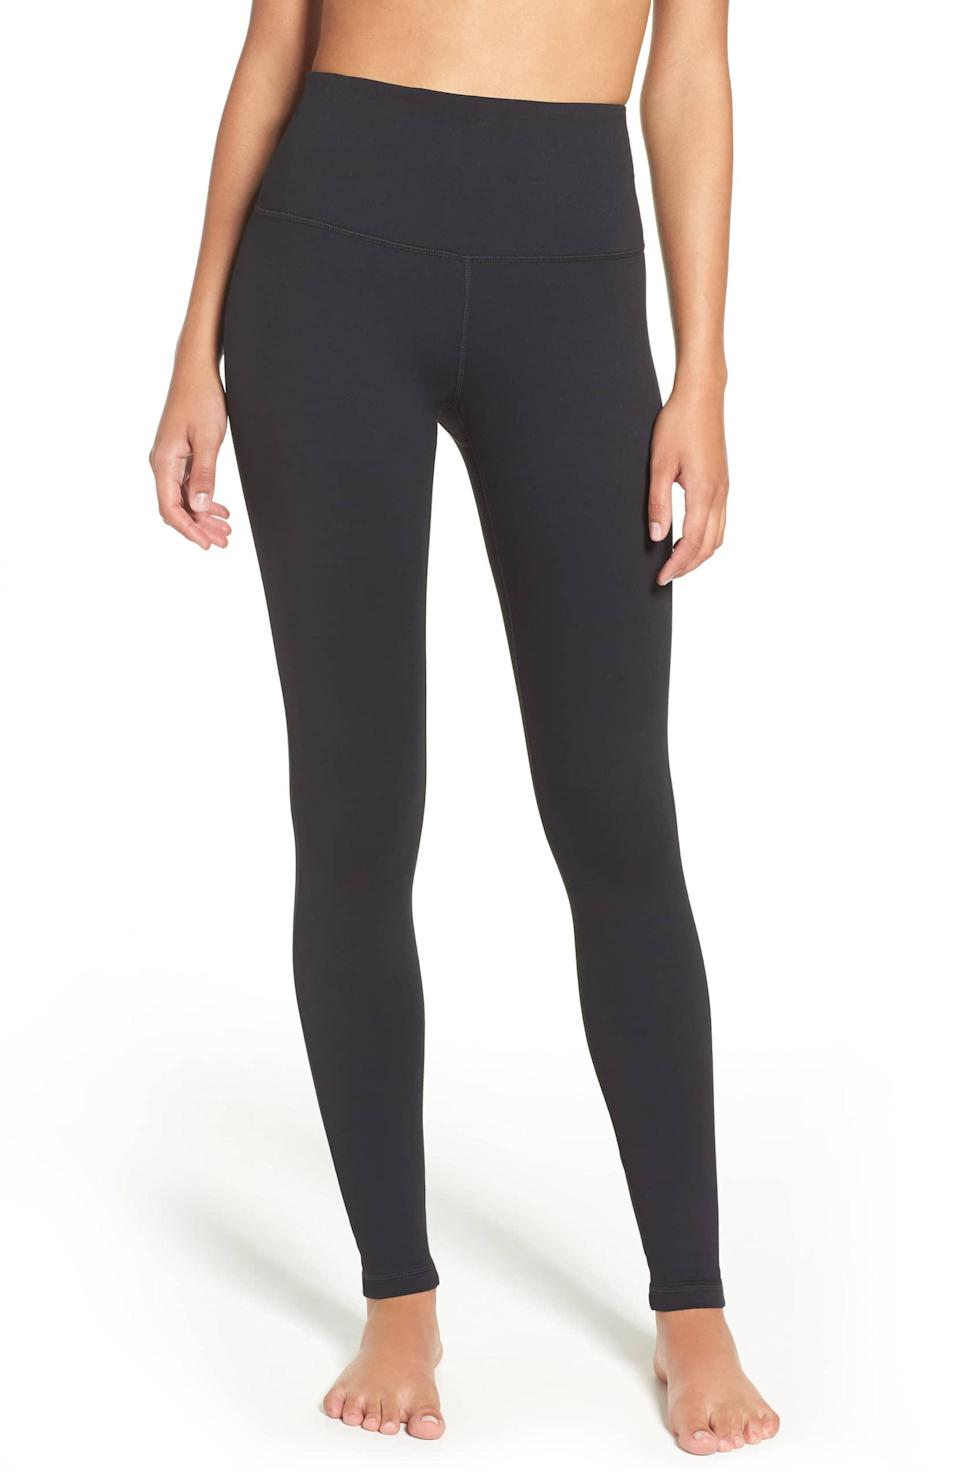 """<p>Think of these high-waist leggings as your new workout staple. The flattering, moisture-wicking fabric keeps you cool while you work up a sweat and with a no-slip waistband to worry about, it's no wonder this pair has a 4.5-star rating.<br><strong><a rel=""""nofollow noopener"""" href=""""https://fave.co/2VuA1D0"""" target=""""_blank"""" data-ylk=""""slk:Shop It"""" class=""""link rapid-noclick-resp"""">Shop It</a>:</strong> $54, <a rel=""""nofollow noopener"""" href=""""https://fave.co/2VuA1D0"""" target=""""_blank"""" data-ylk=""""slk:nordstrom.com"""" class=""""link rapid-noclick-resp"""">nordstrom.com</a> </p>"""